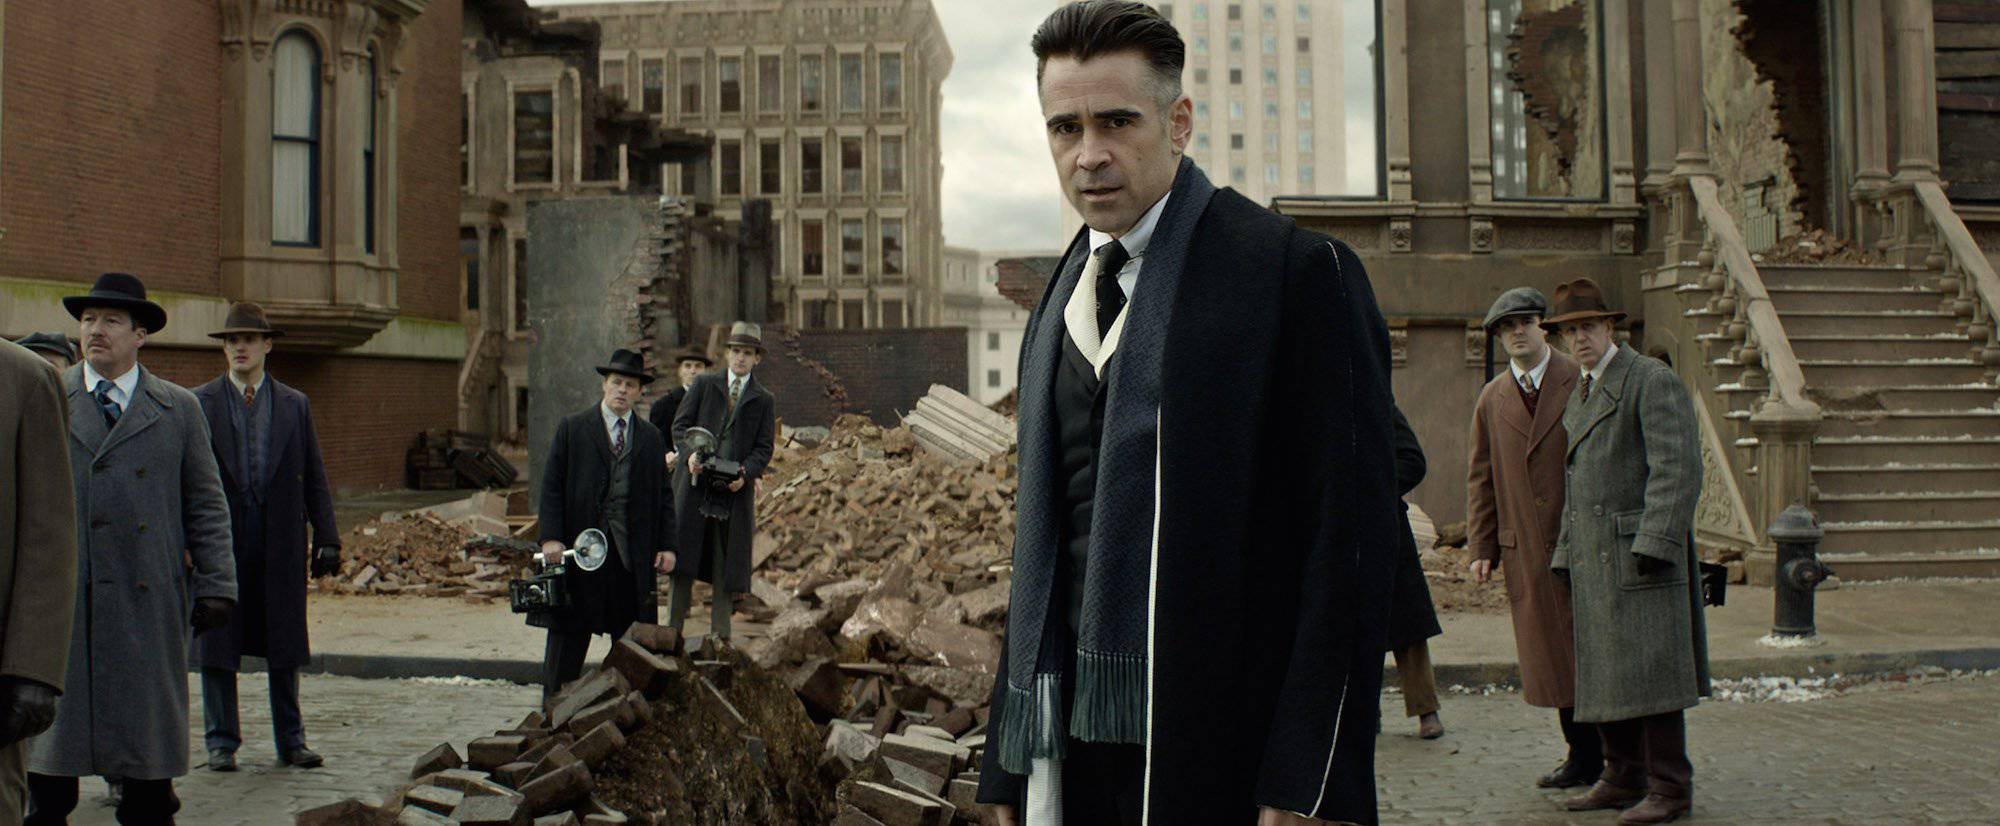 Fantastic Beasts: Colin Farrell Shares Morbid Theory About Character's Fate